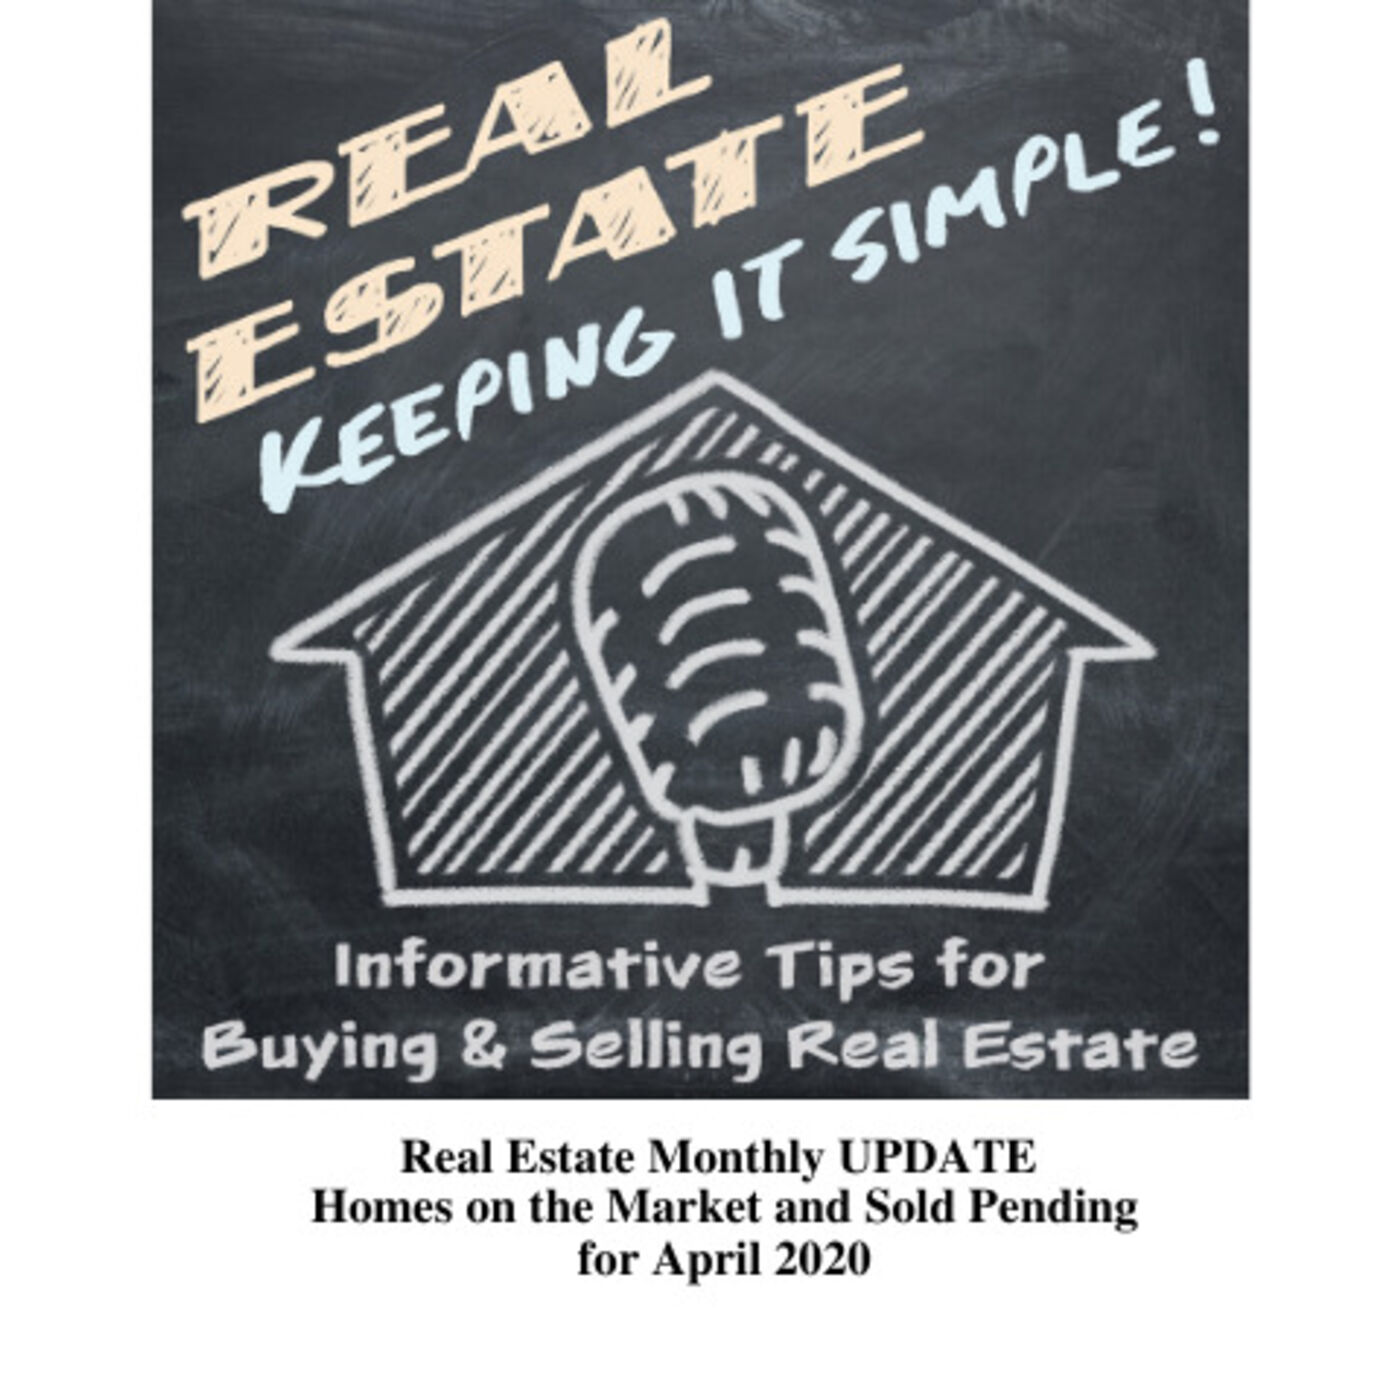 Real Estate Market UPDATE for April 2020